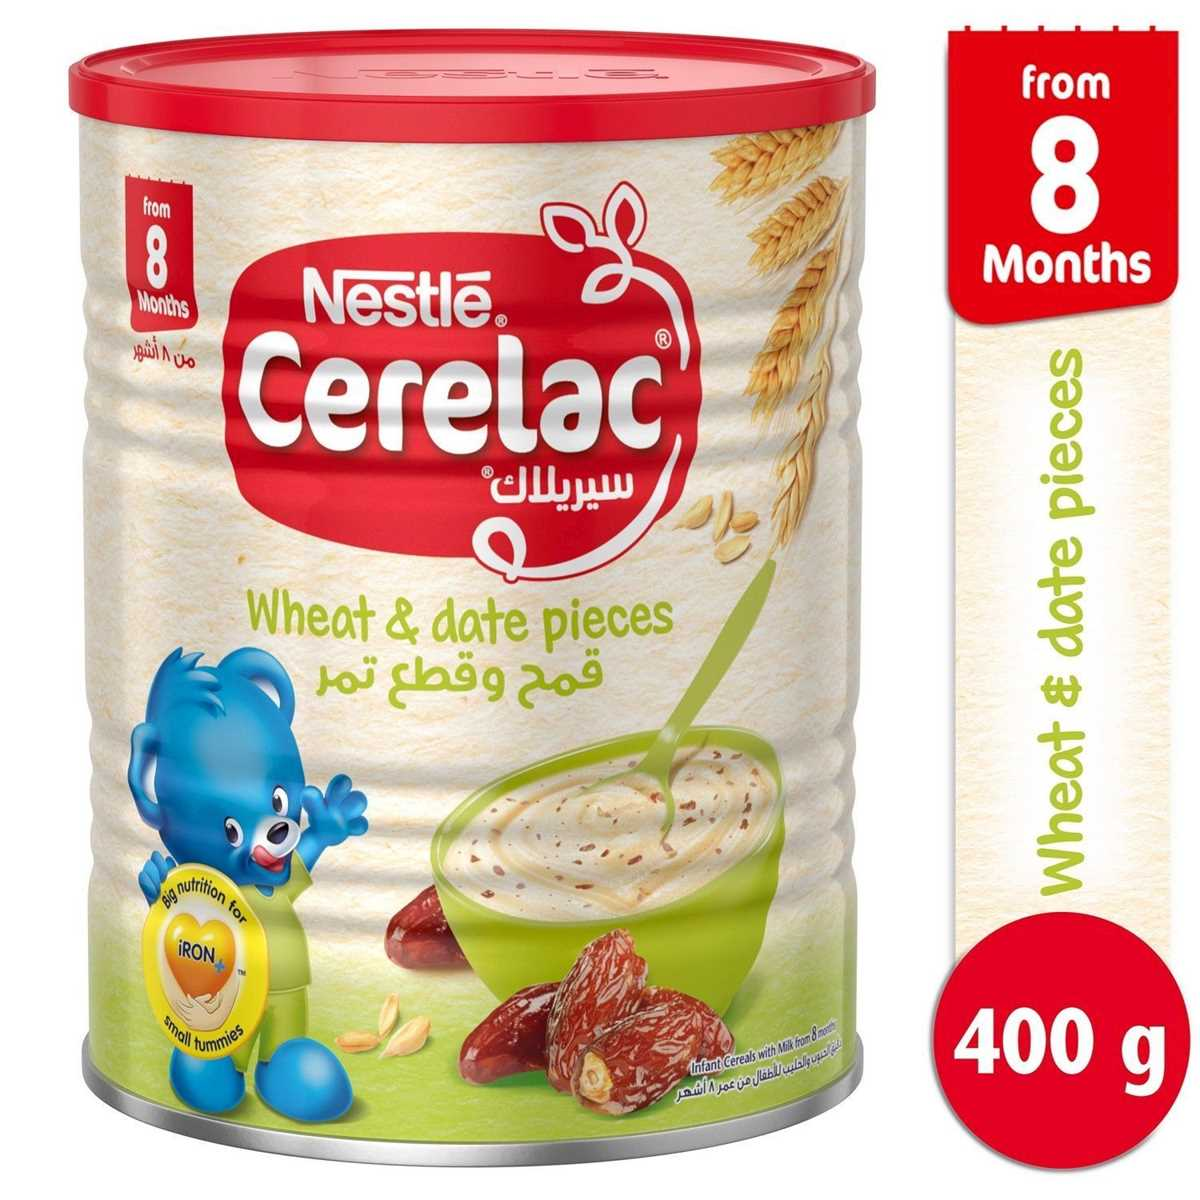 Nestle Cerelac Wheat & Date Pieces - 400g (Imported)